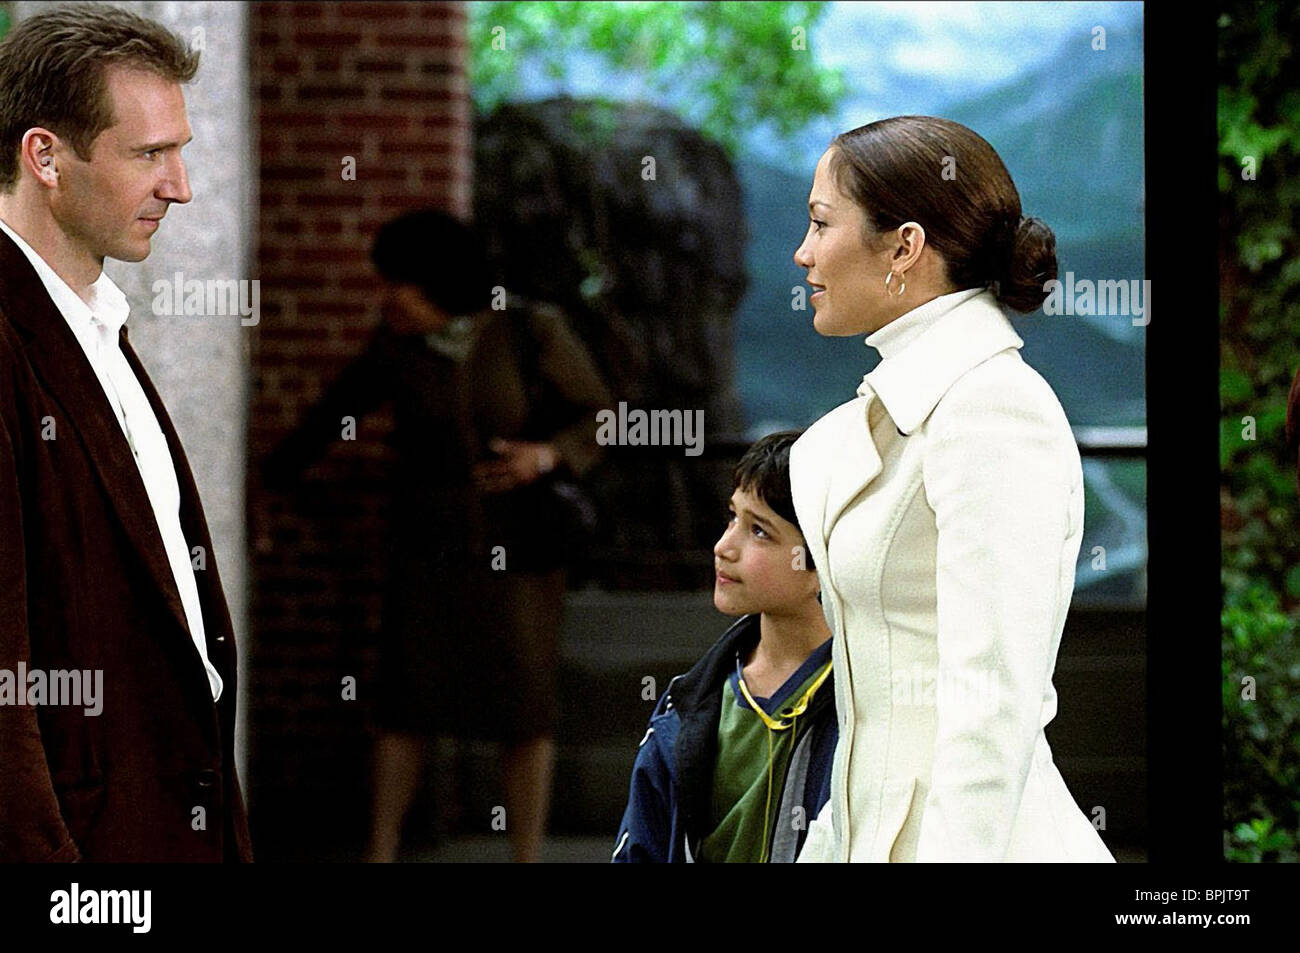 RALPH FIENNES TYLER GARCIA POSEY JENNIFER LOPEZ MAID IN MANHATTAN; THE CHAMBERMAID (2002) - Stock Image